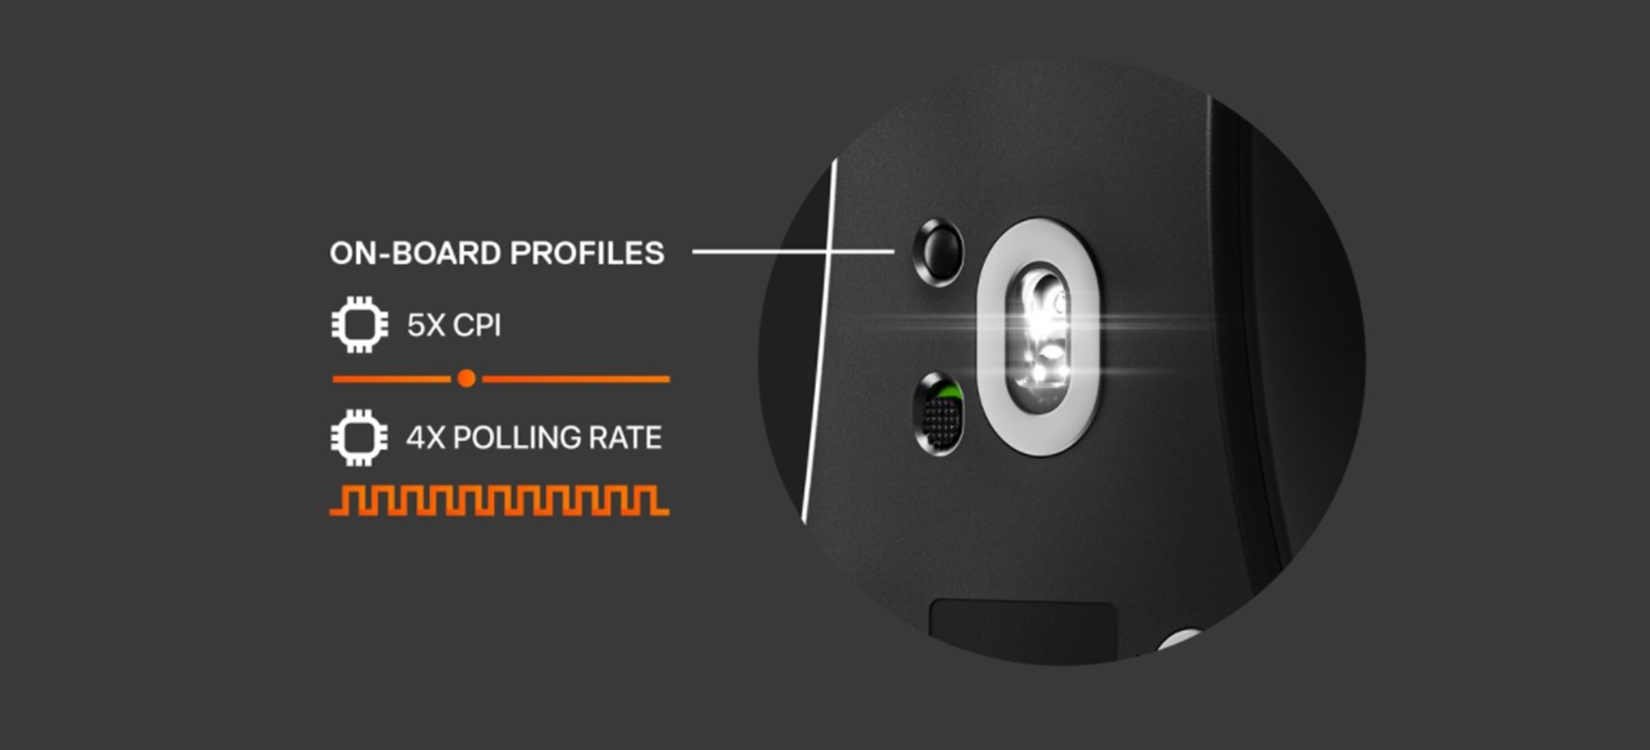 Chuột không dây Steelseries Prime wireless